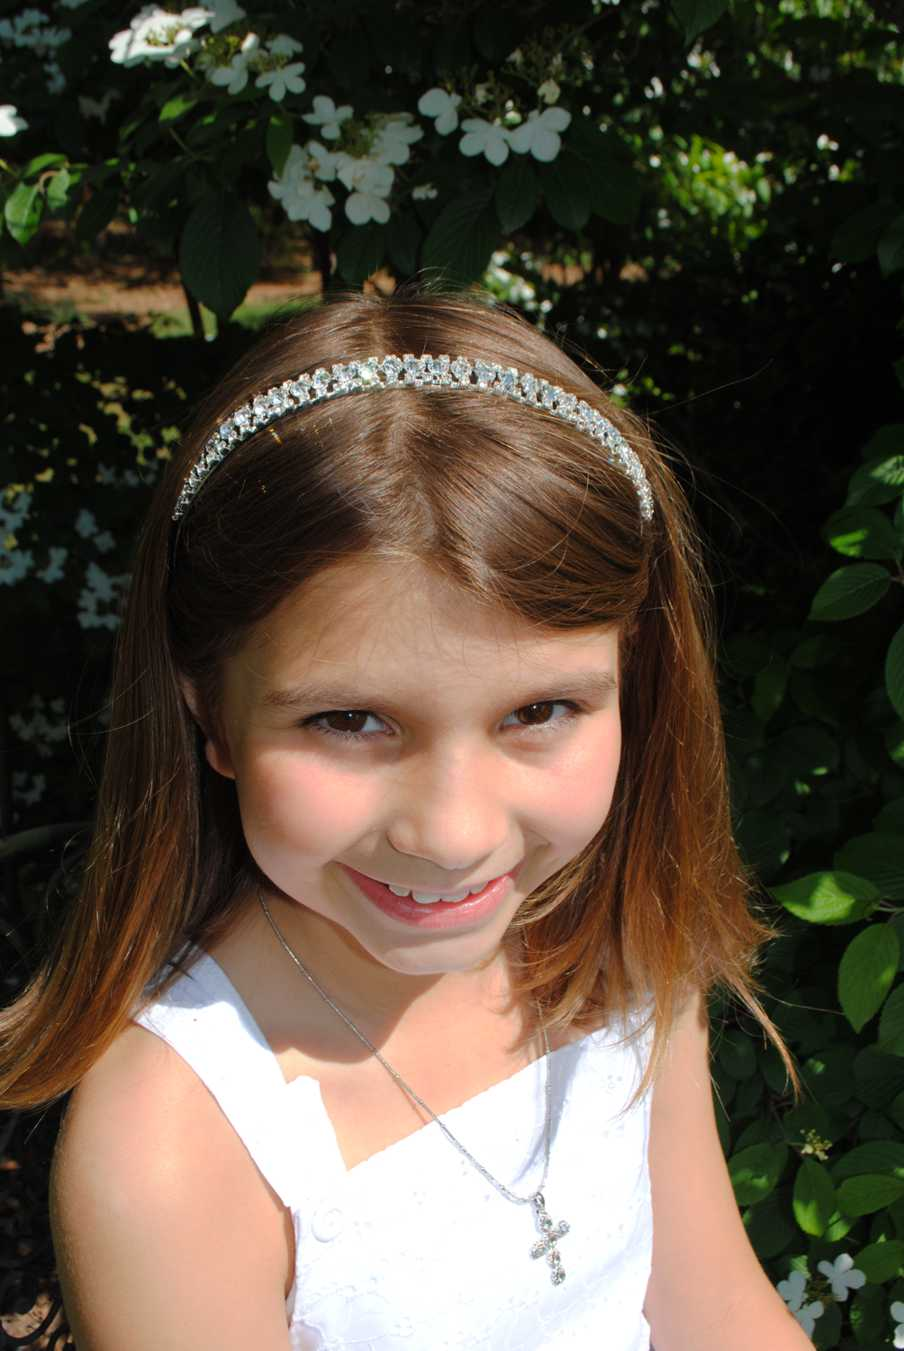 Rhinestone Fashion Head Band-Rhinestone Design Head Band, first communion headbands rhinestone, flower girl rhinestone headbands